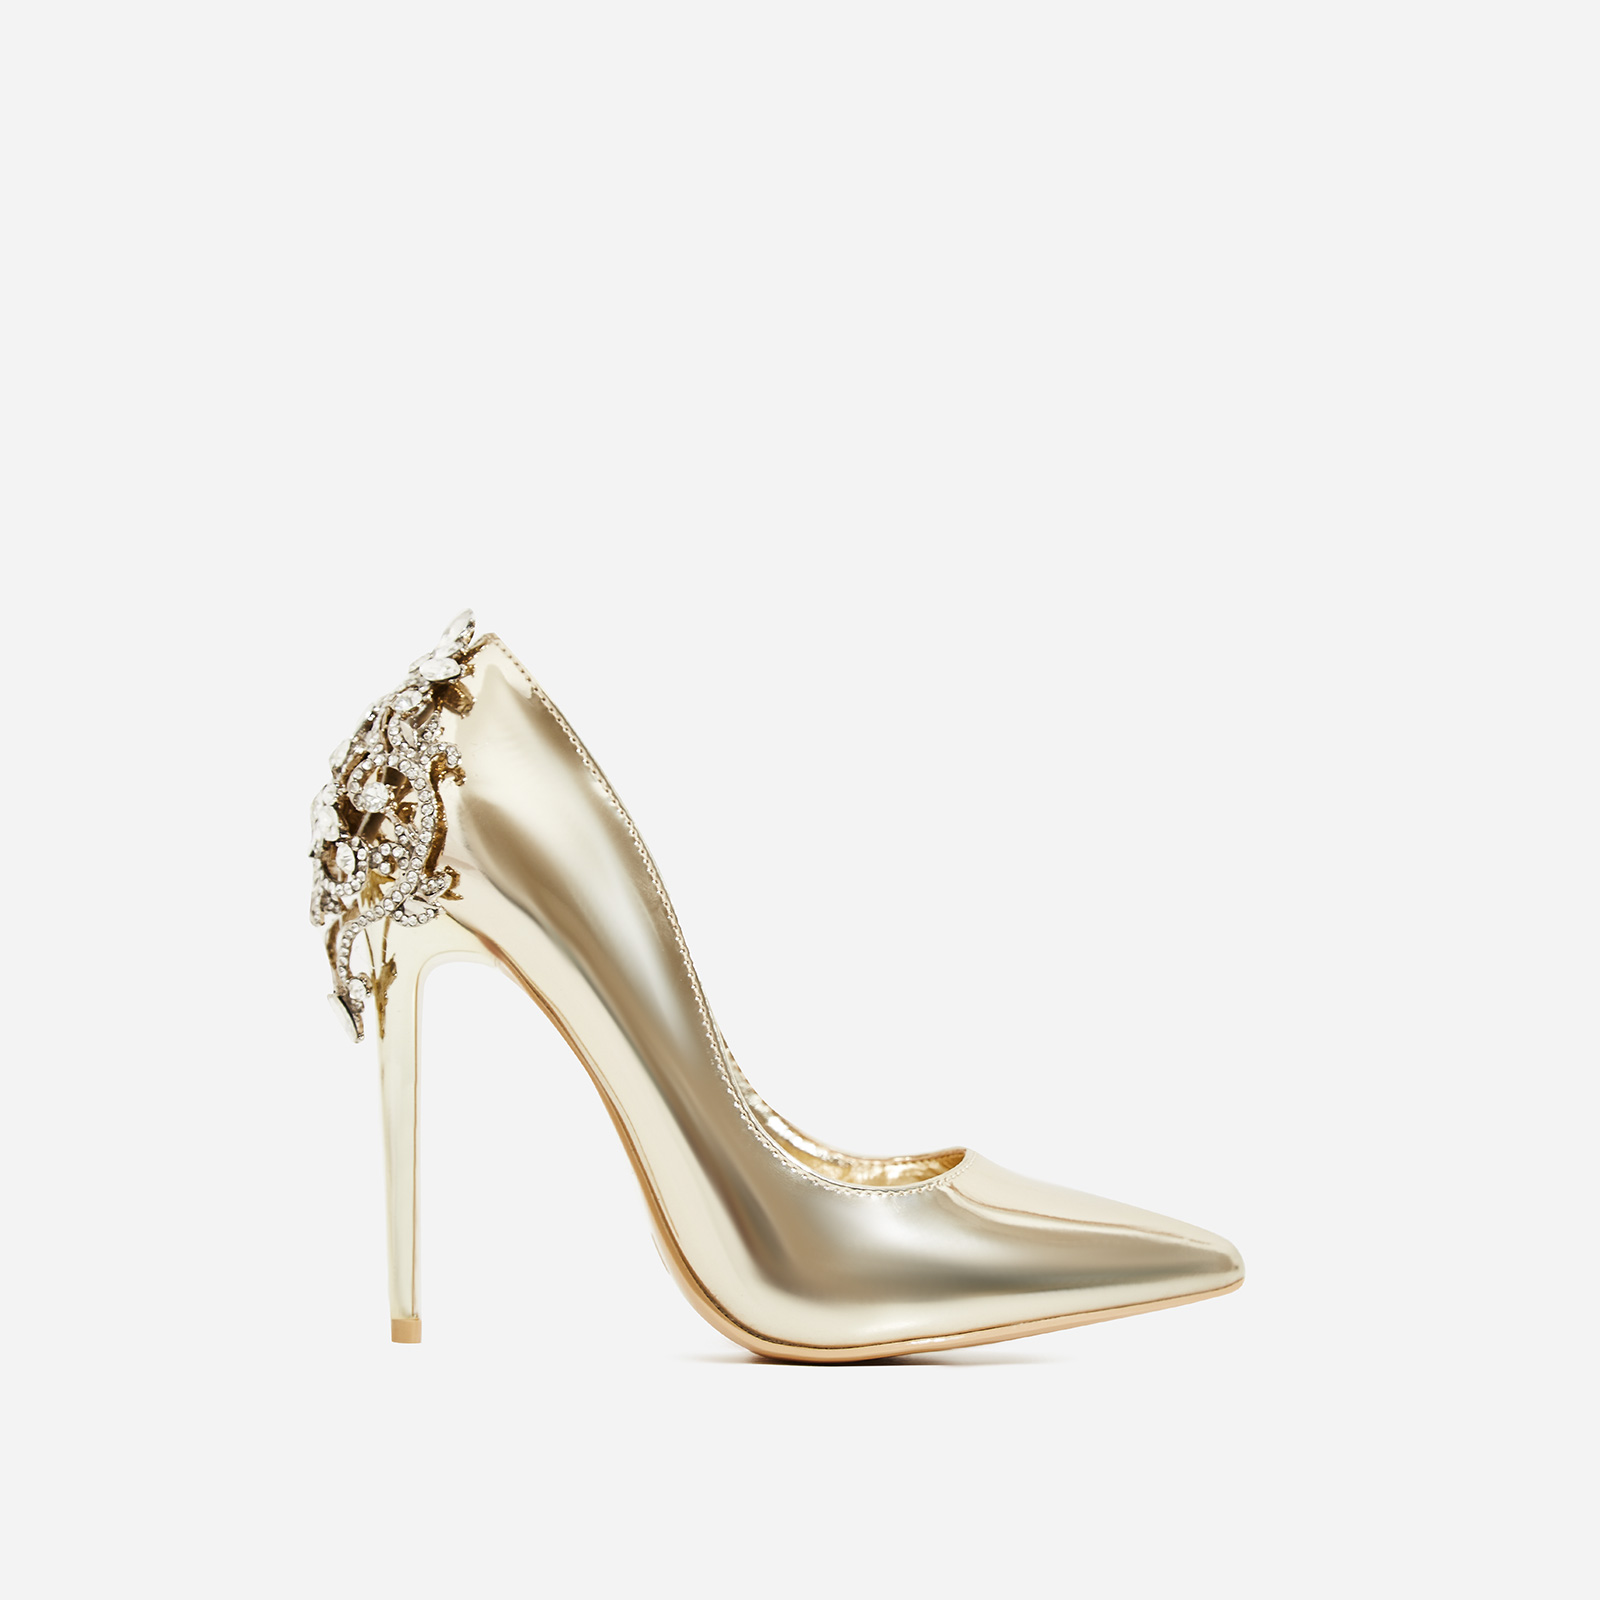 Aries Jewel Embellished Court Heel In Metallic Gold Patent